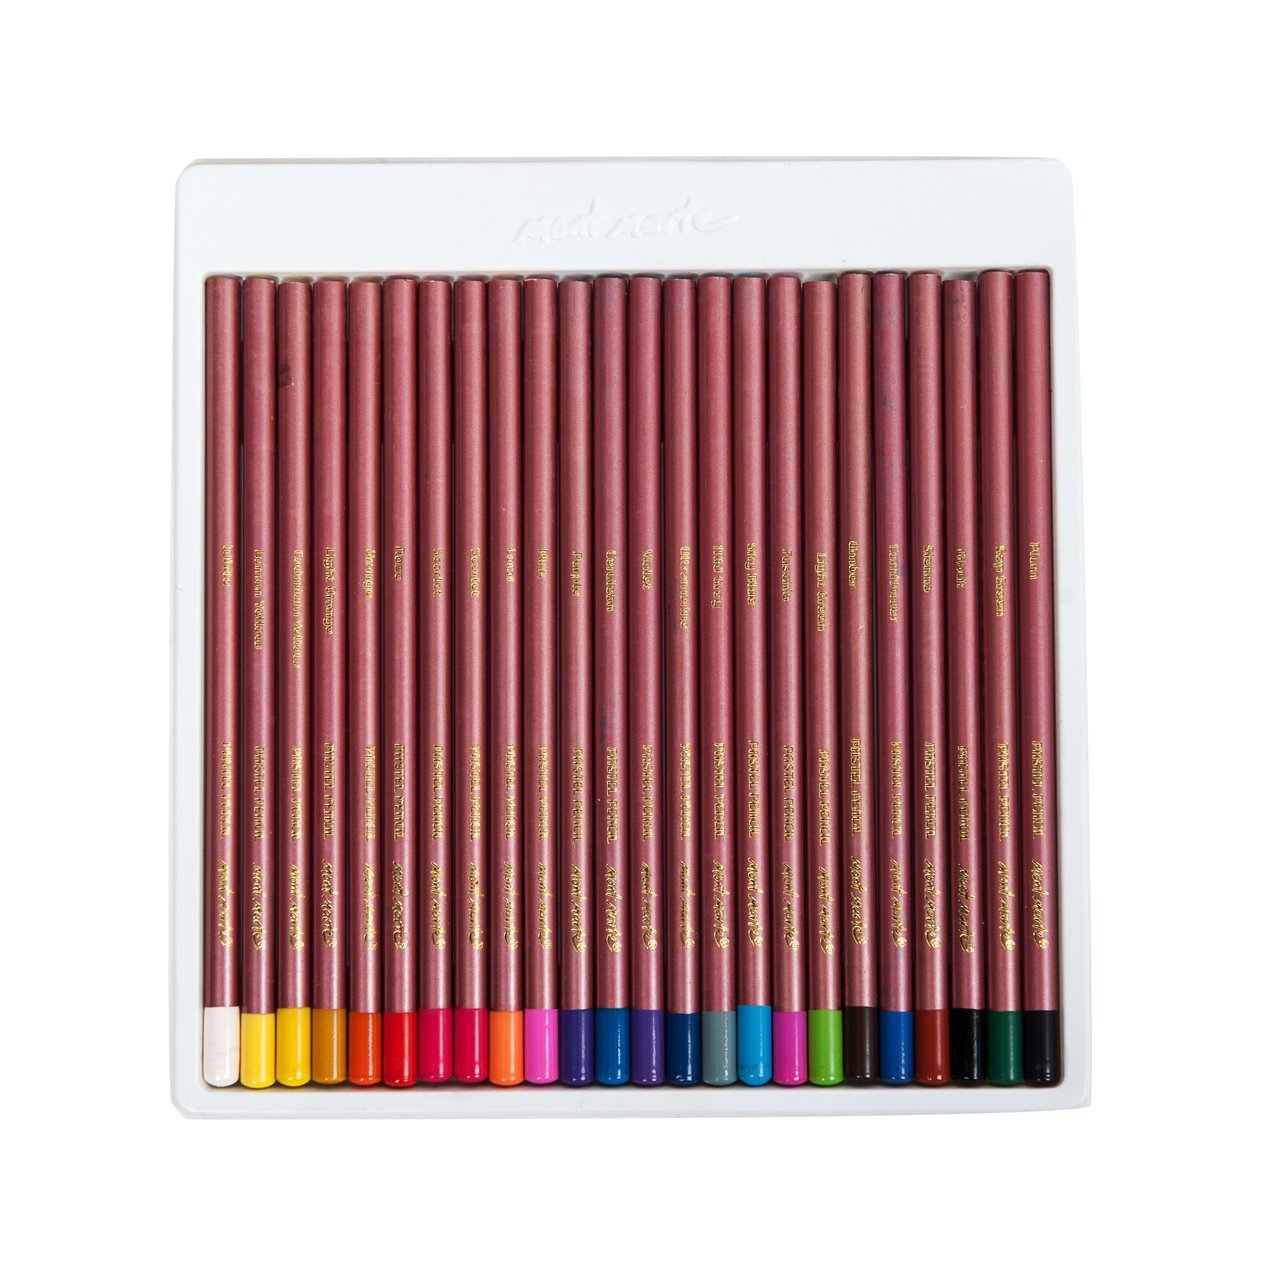 best pastel pencils for drawing